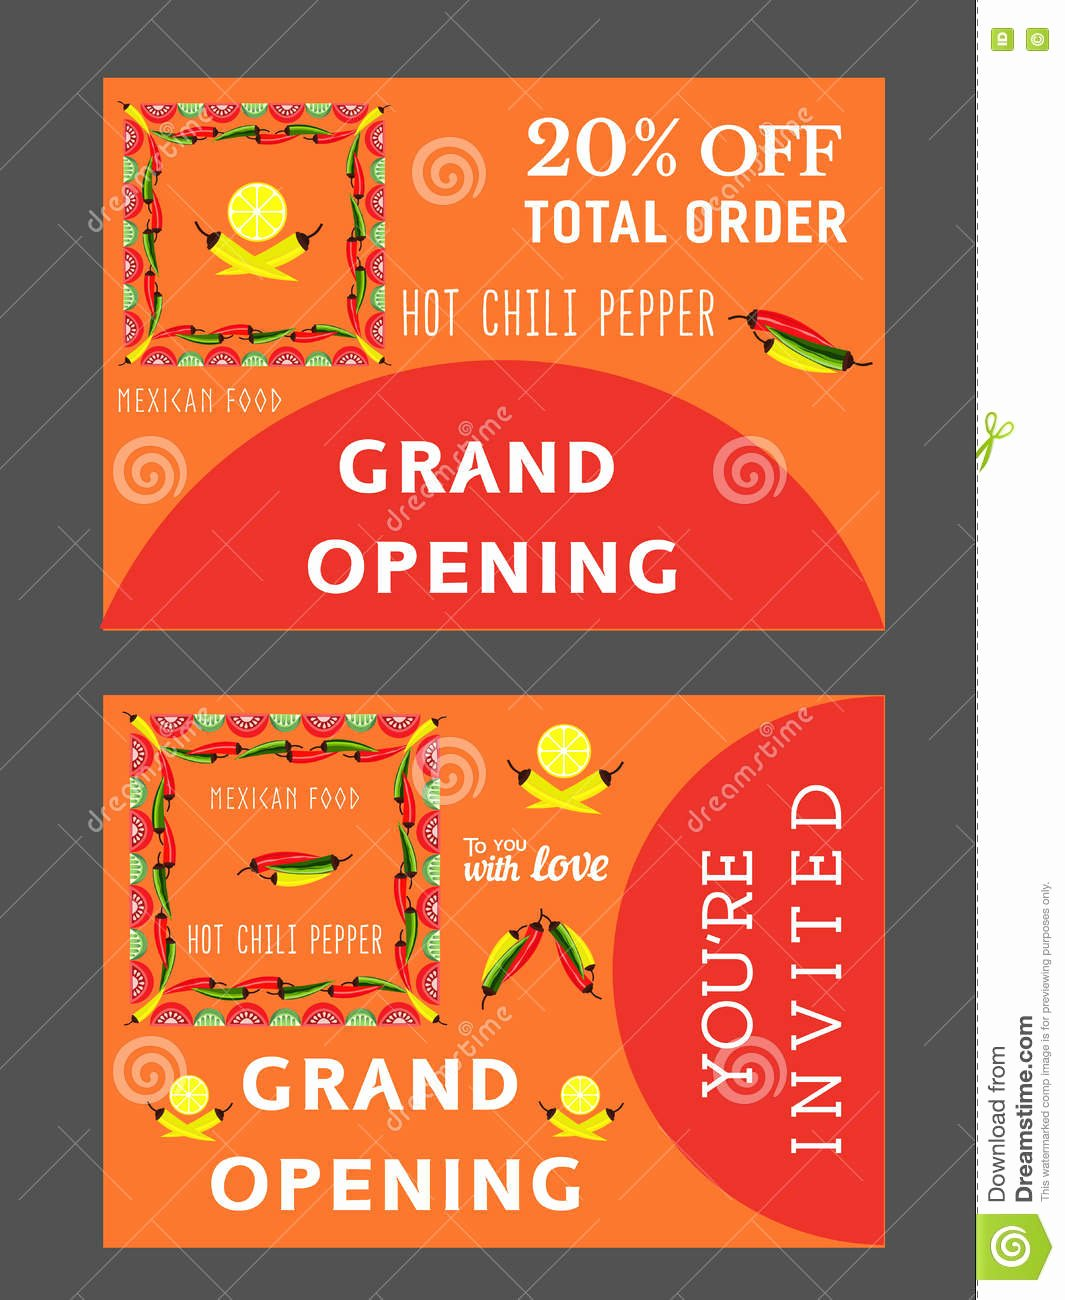 Restaurant Grand Opening Invitation New Mexican Restaurant Template Stock Vector Image